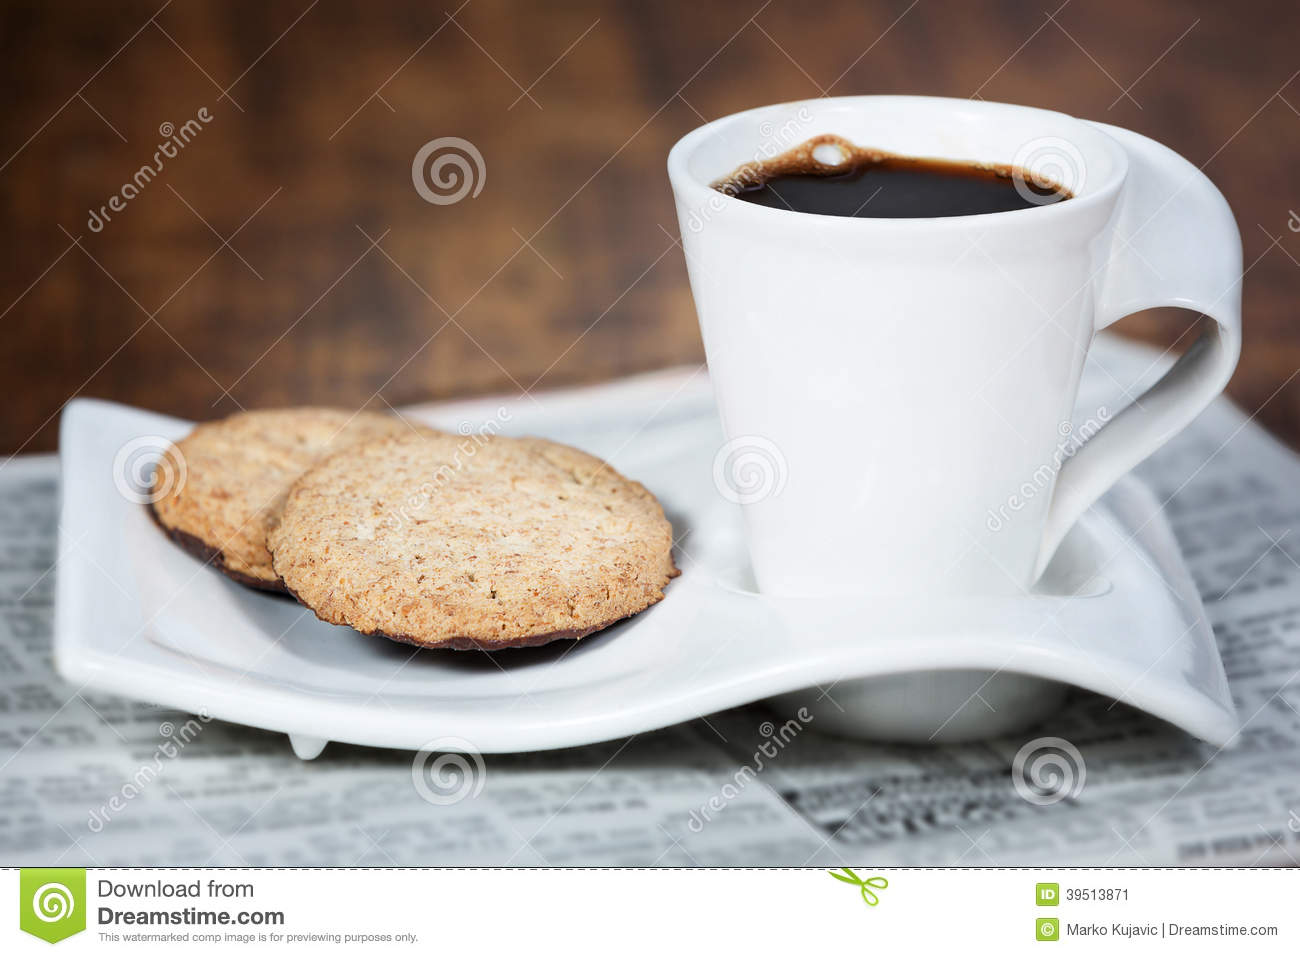 Cup of coffee and a cookie.